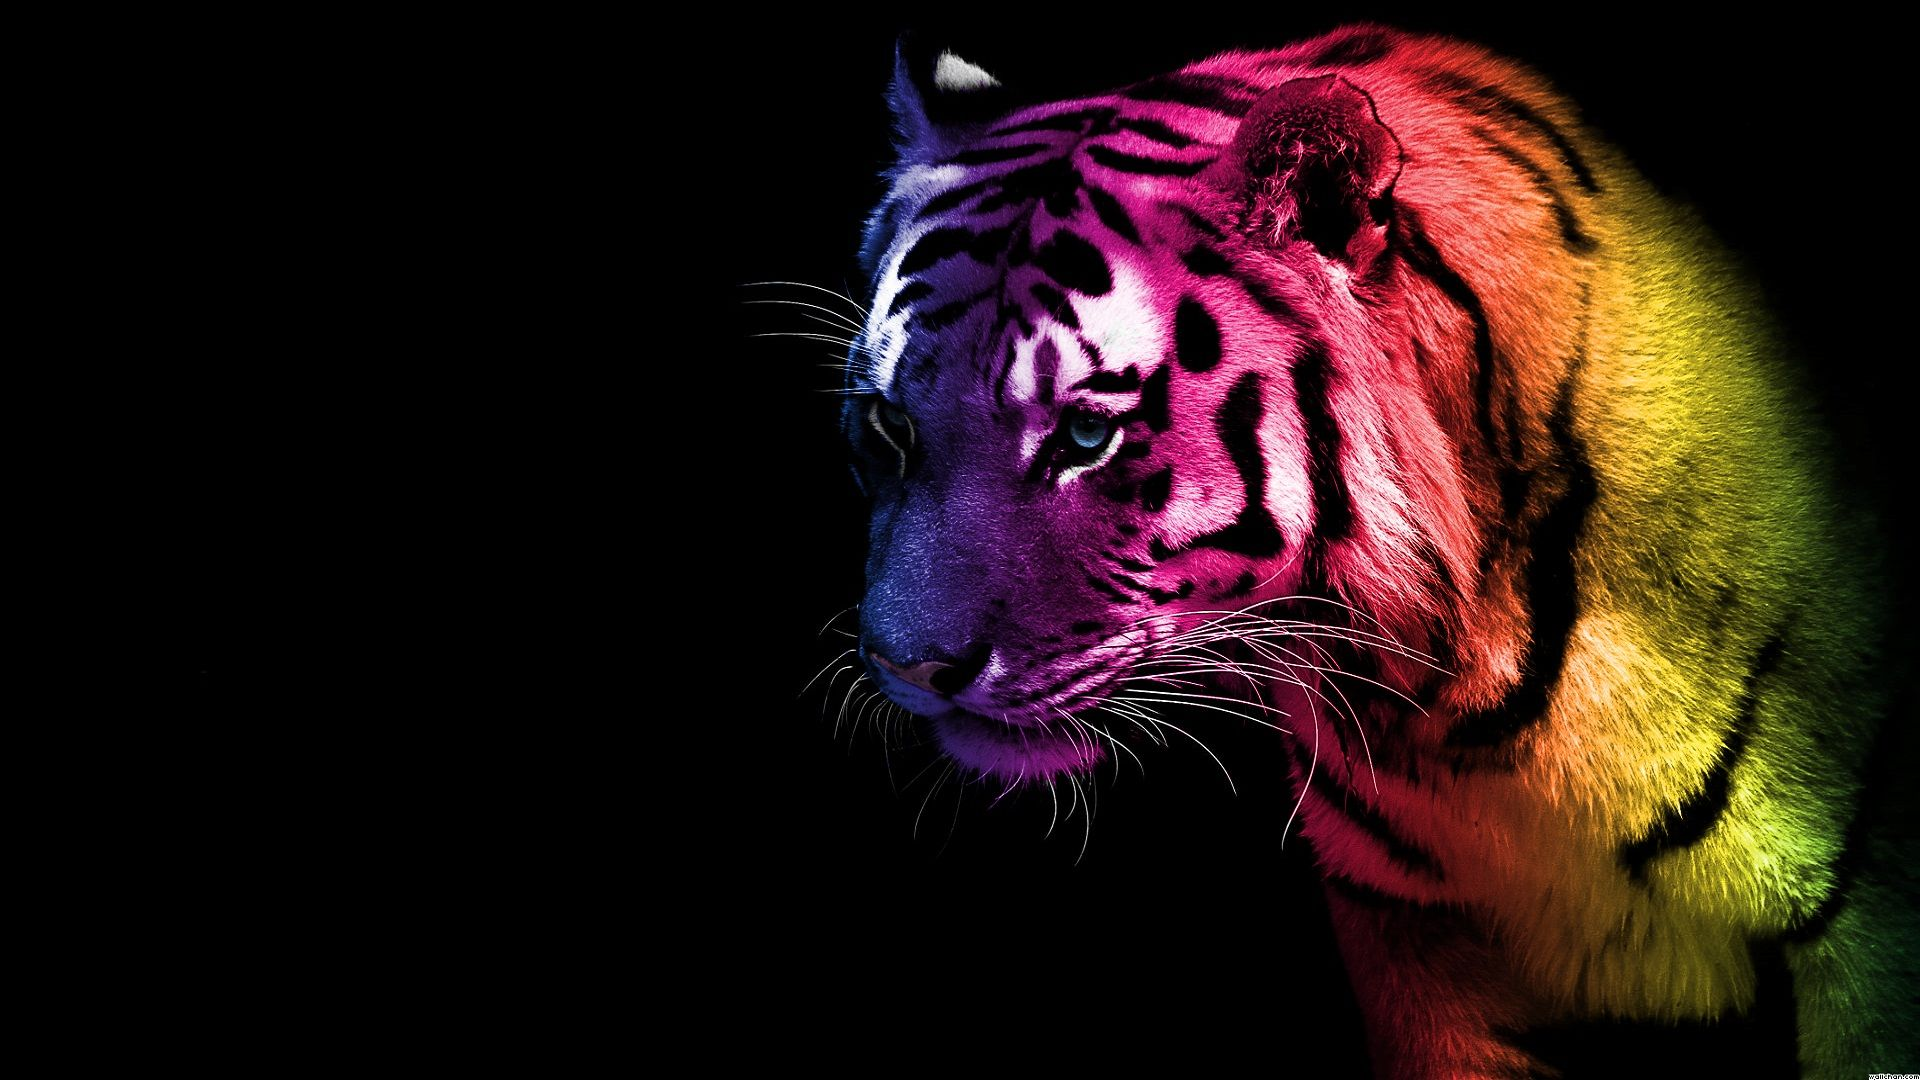 cool glow pictures Cool Tiger Glow HD Wallpaper